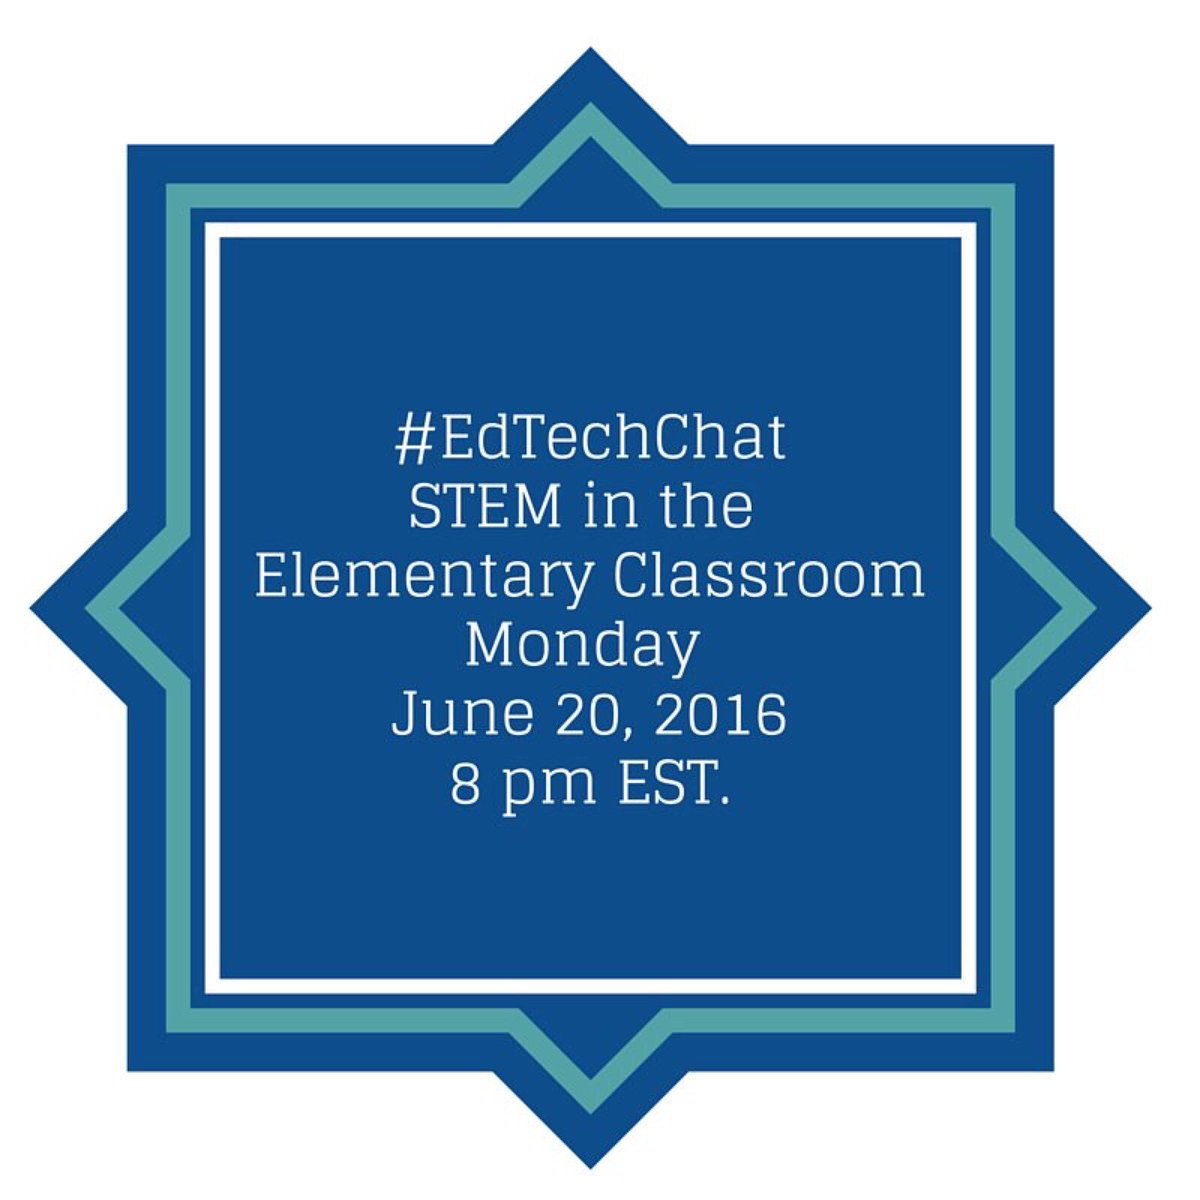 Come discuss #STEM in the elementary classroom during this week's #edtechchat! #elemchat #edtech https://t.co/S8QXbSv8ed